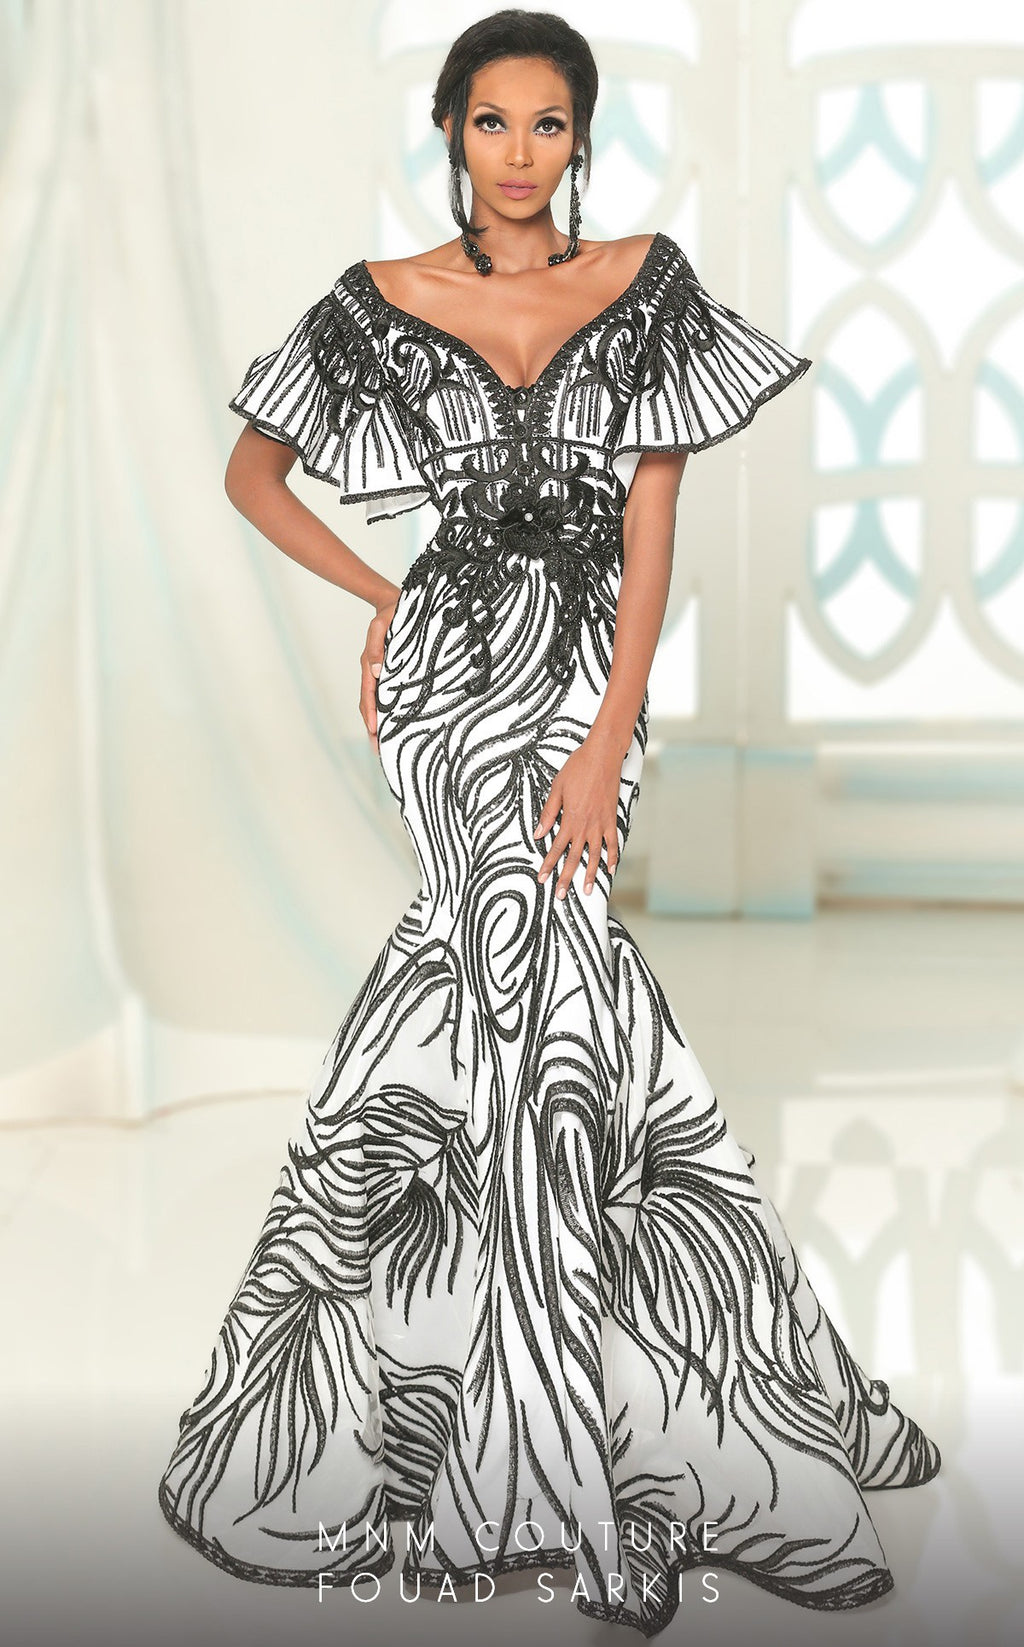 MNM Couture Fouad Sarkis 2529 Evening Dress - CYC Boutique